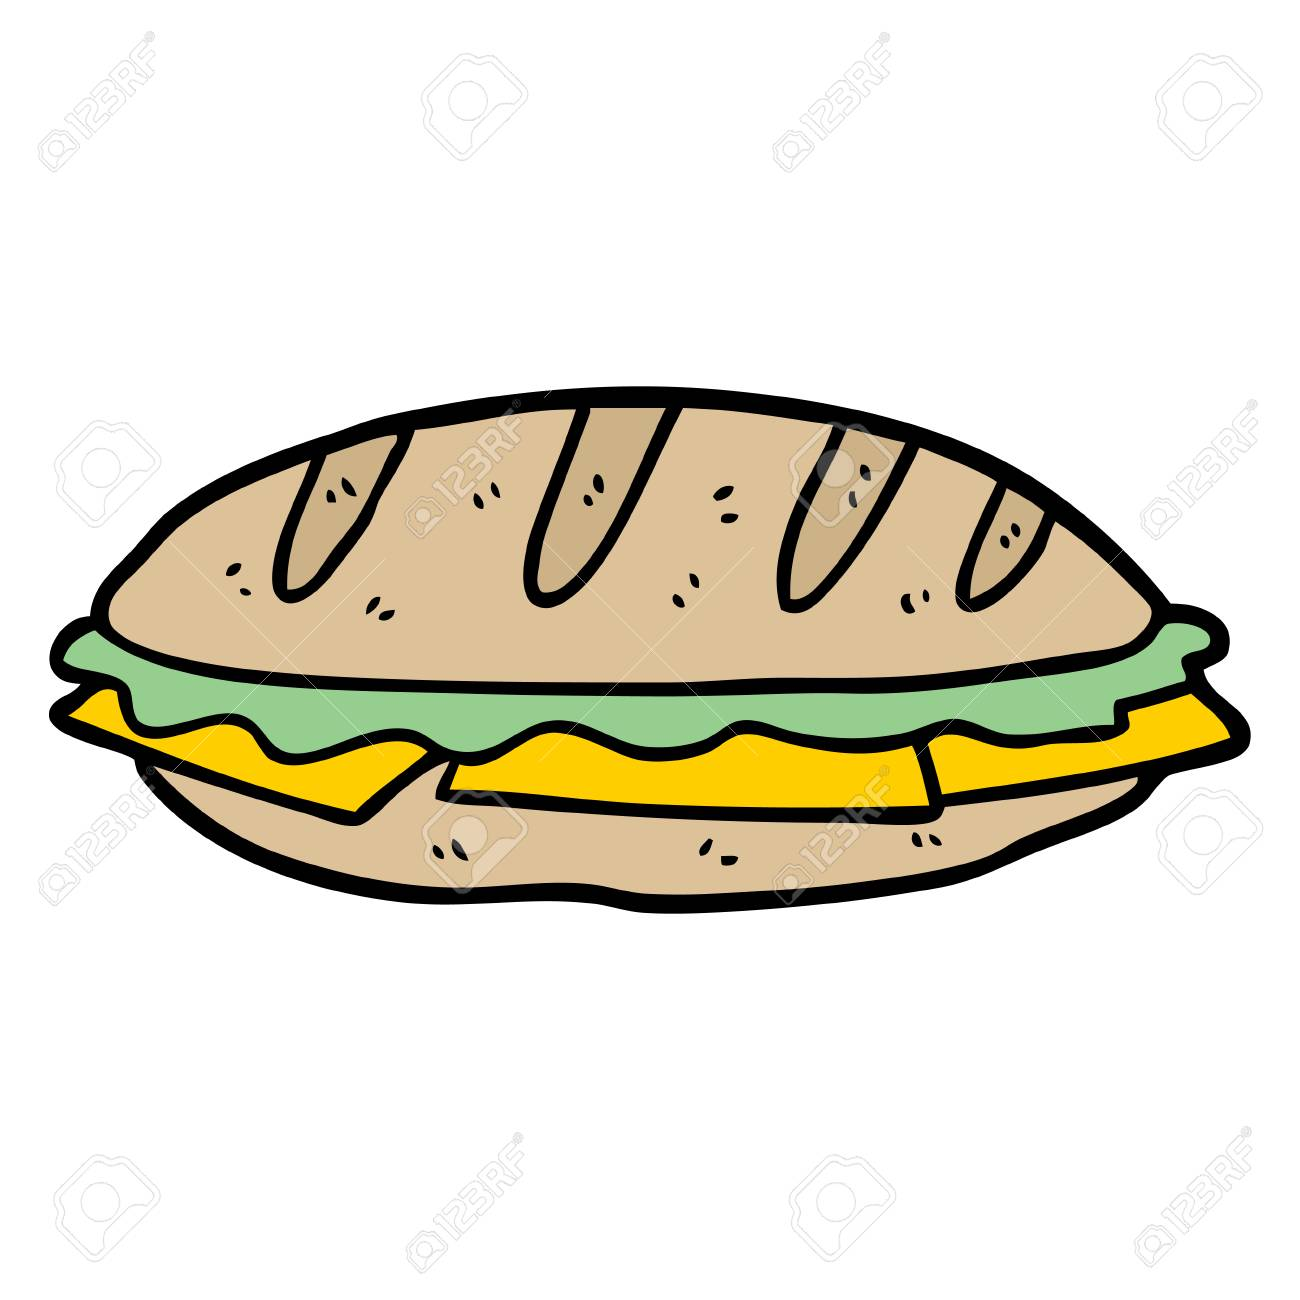 cartoon cheese sandwich royalty free cliparts vectors and stock illustration image 94737573 123rf com